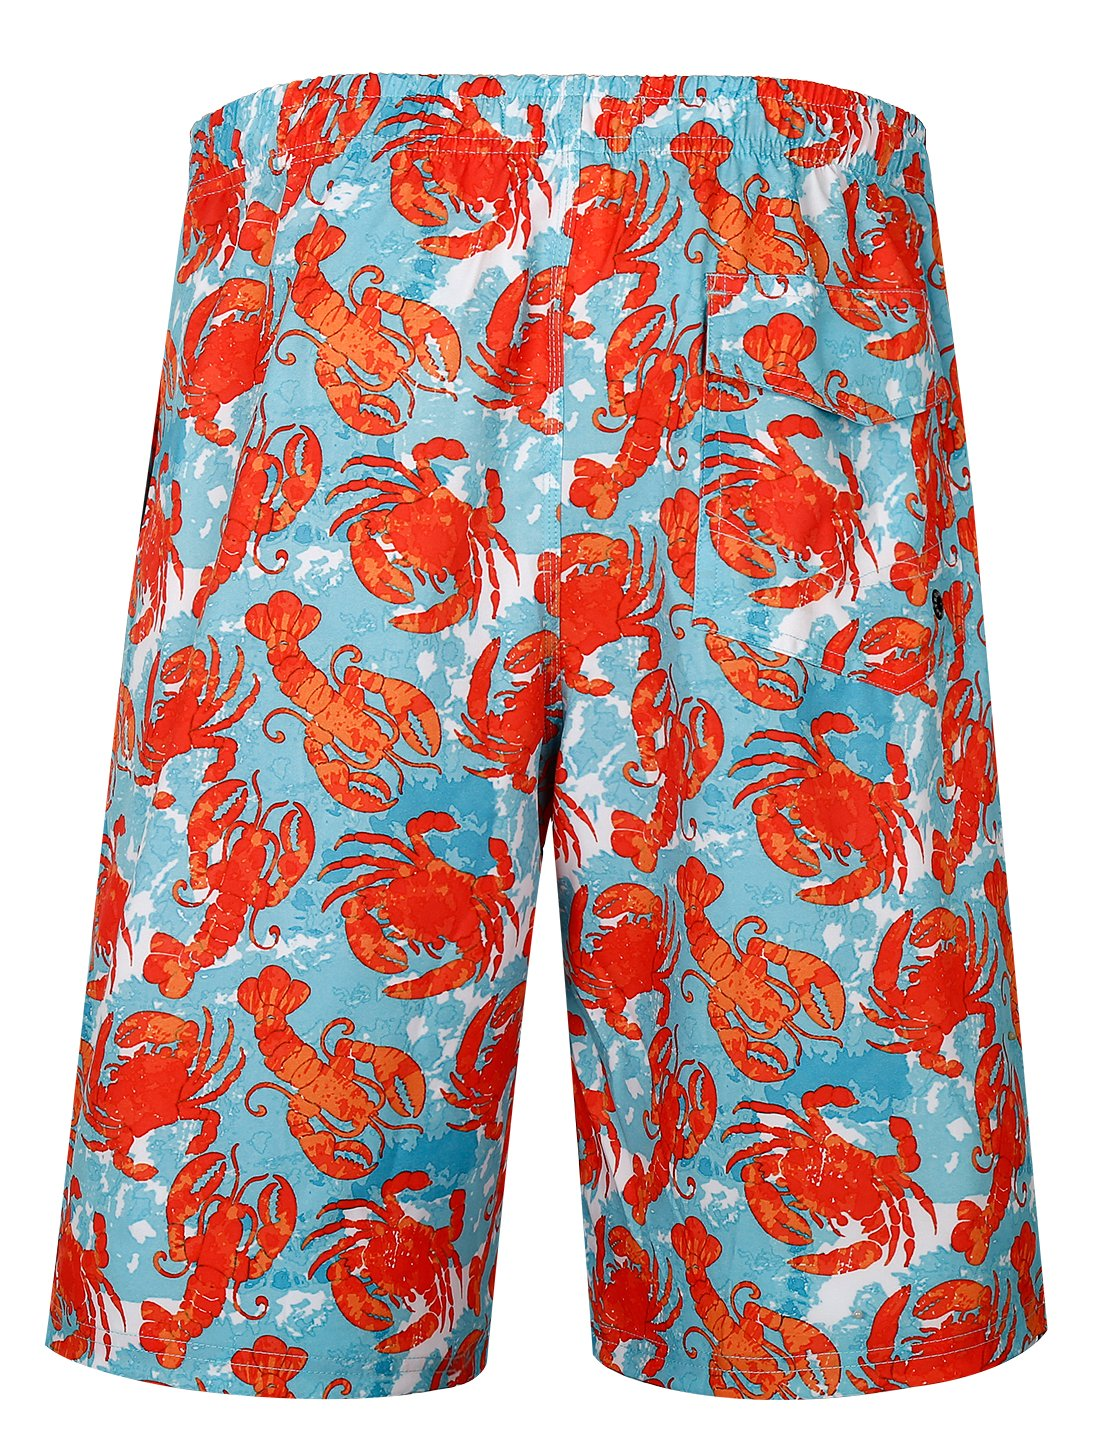 APTRO Men's Swim Trunks Crab Printing Bathing Suit #HW016 XXL by APTRO (Image #2)